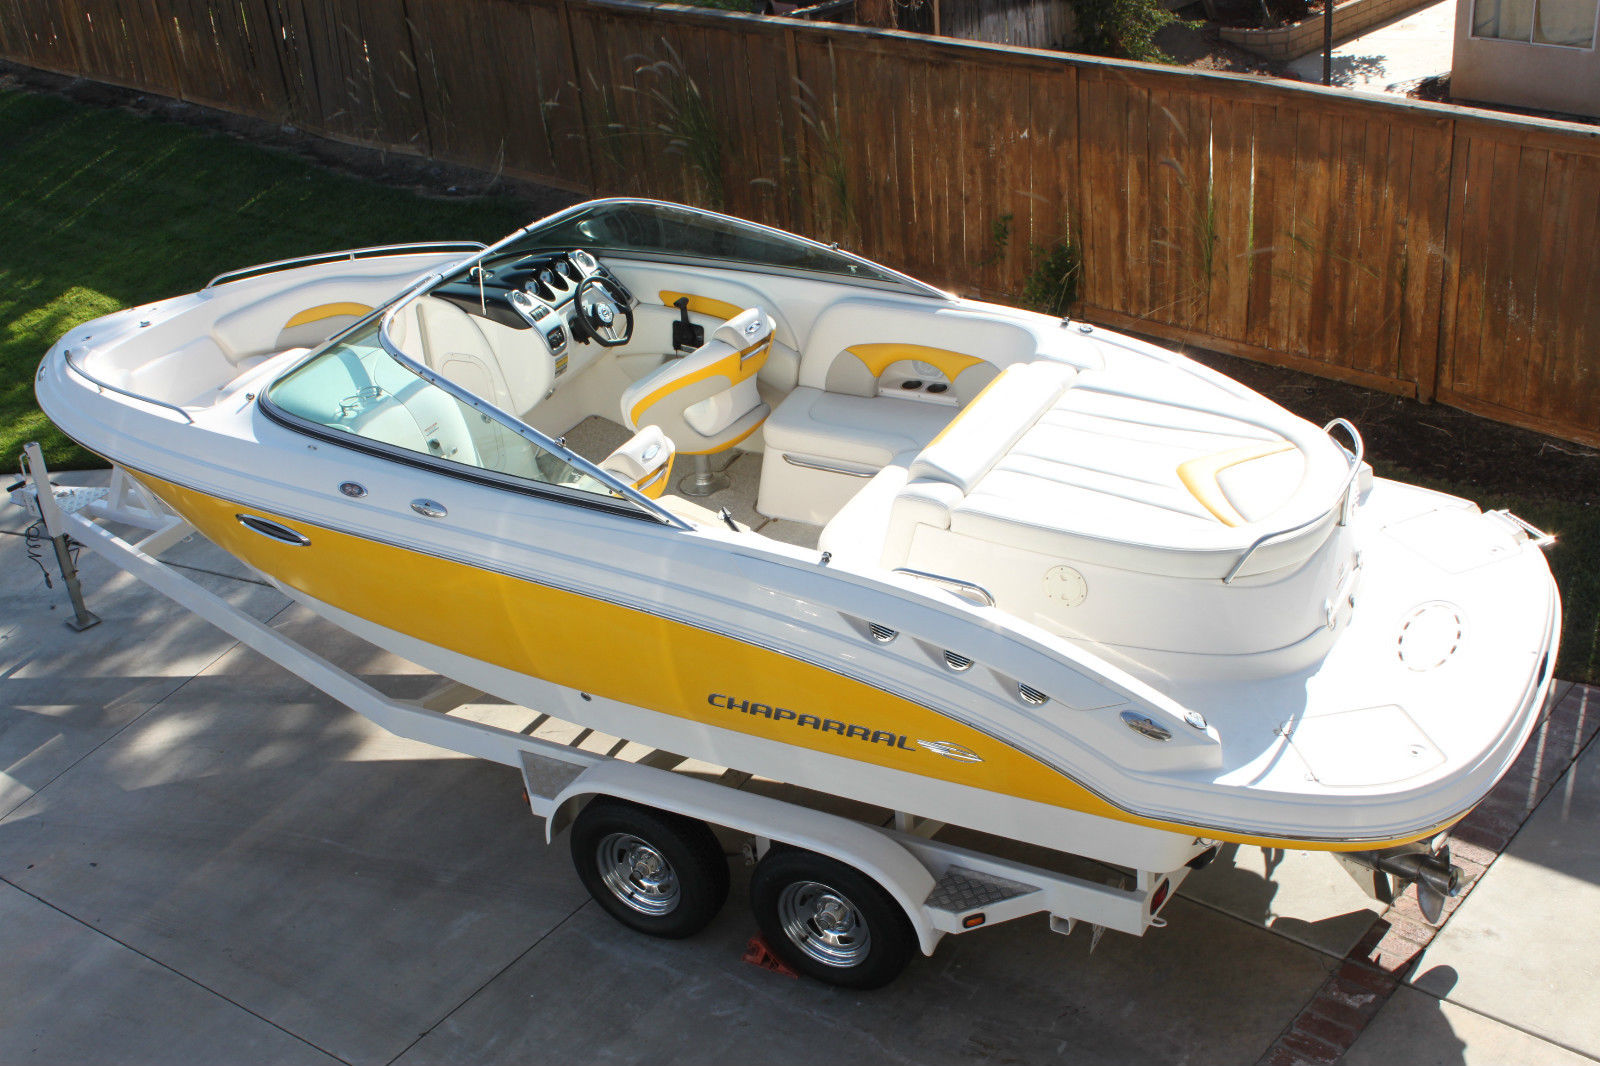 Chaparral 236 SSX 2007 For Sale For 26500 Boats From